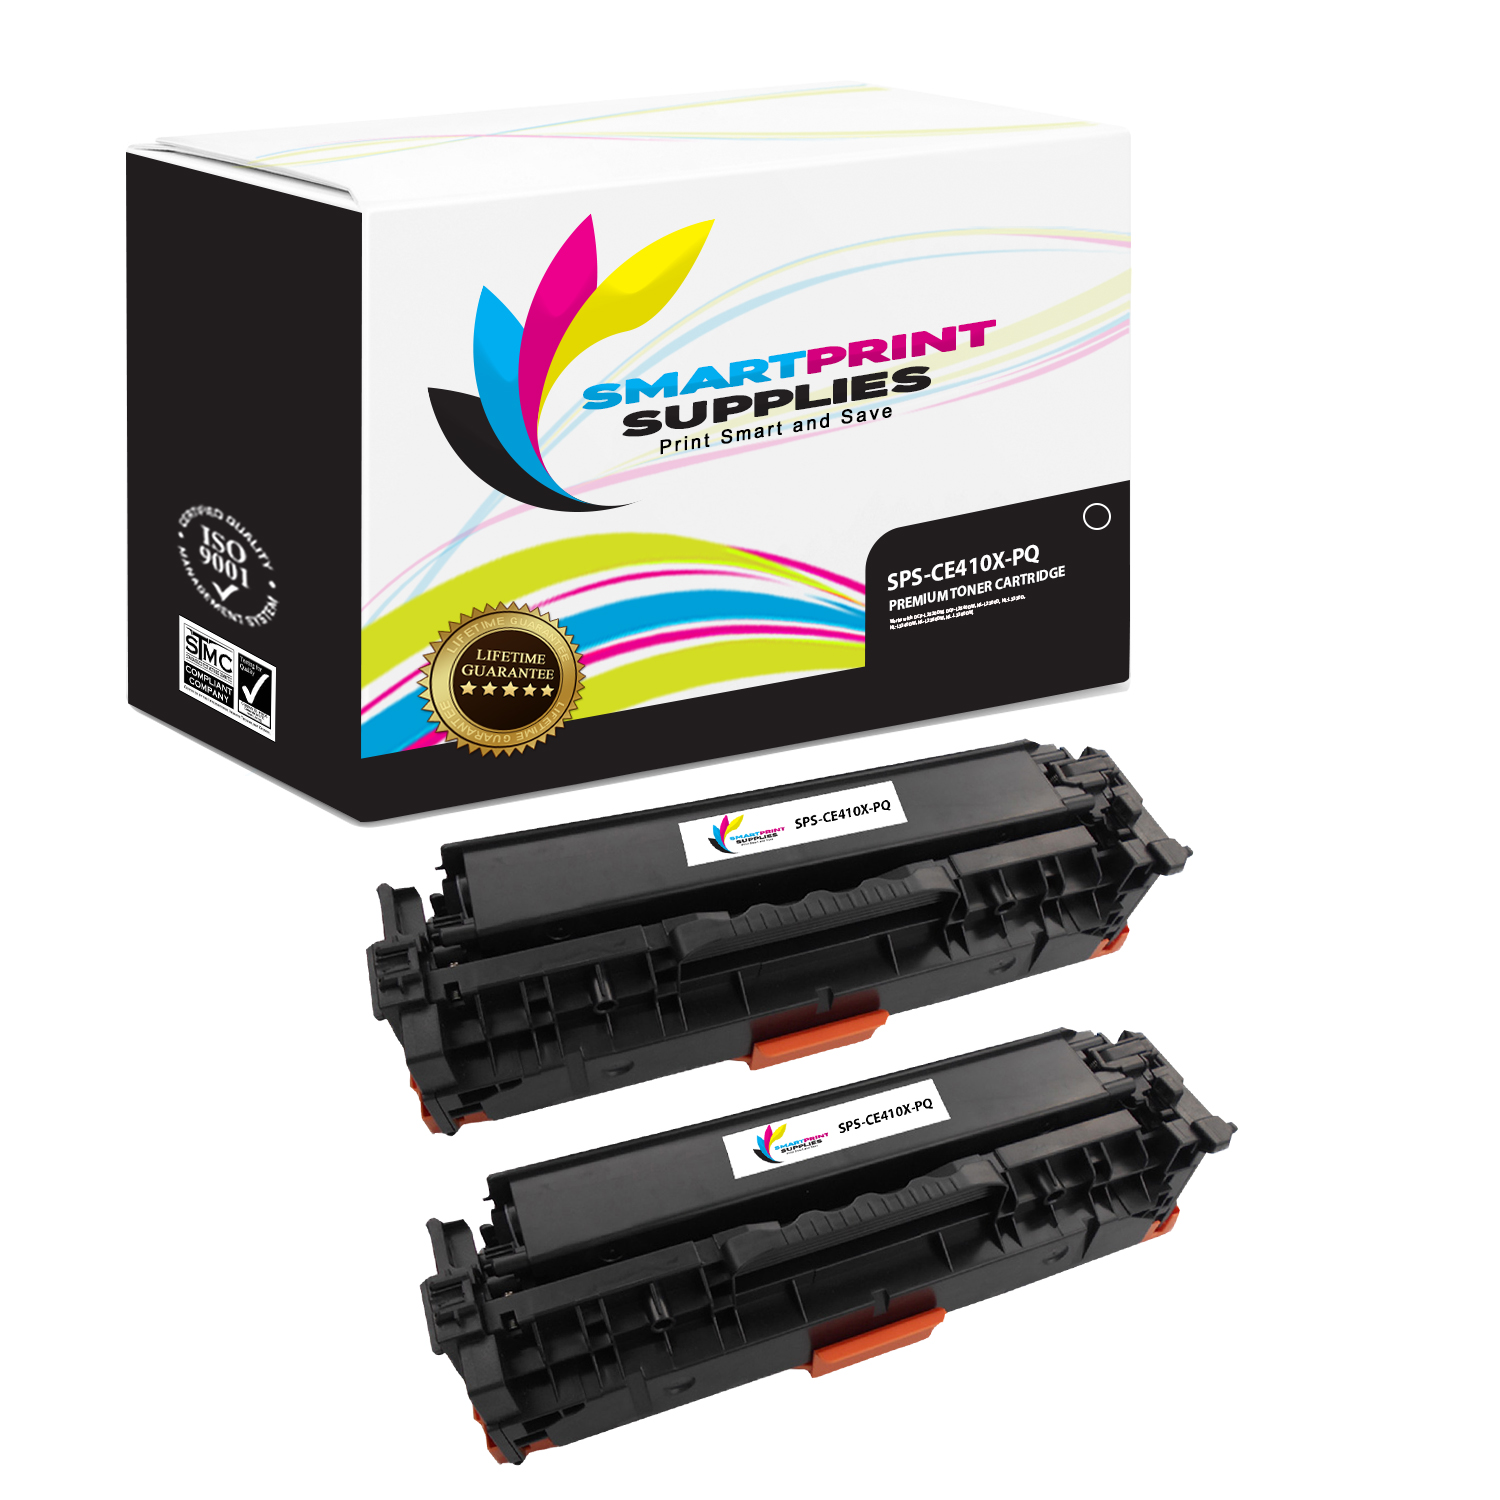 2pk CE413A Magenta Toner Cartridge for HP Color LaserJet Pro 300 M375 MFP M375nw